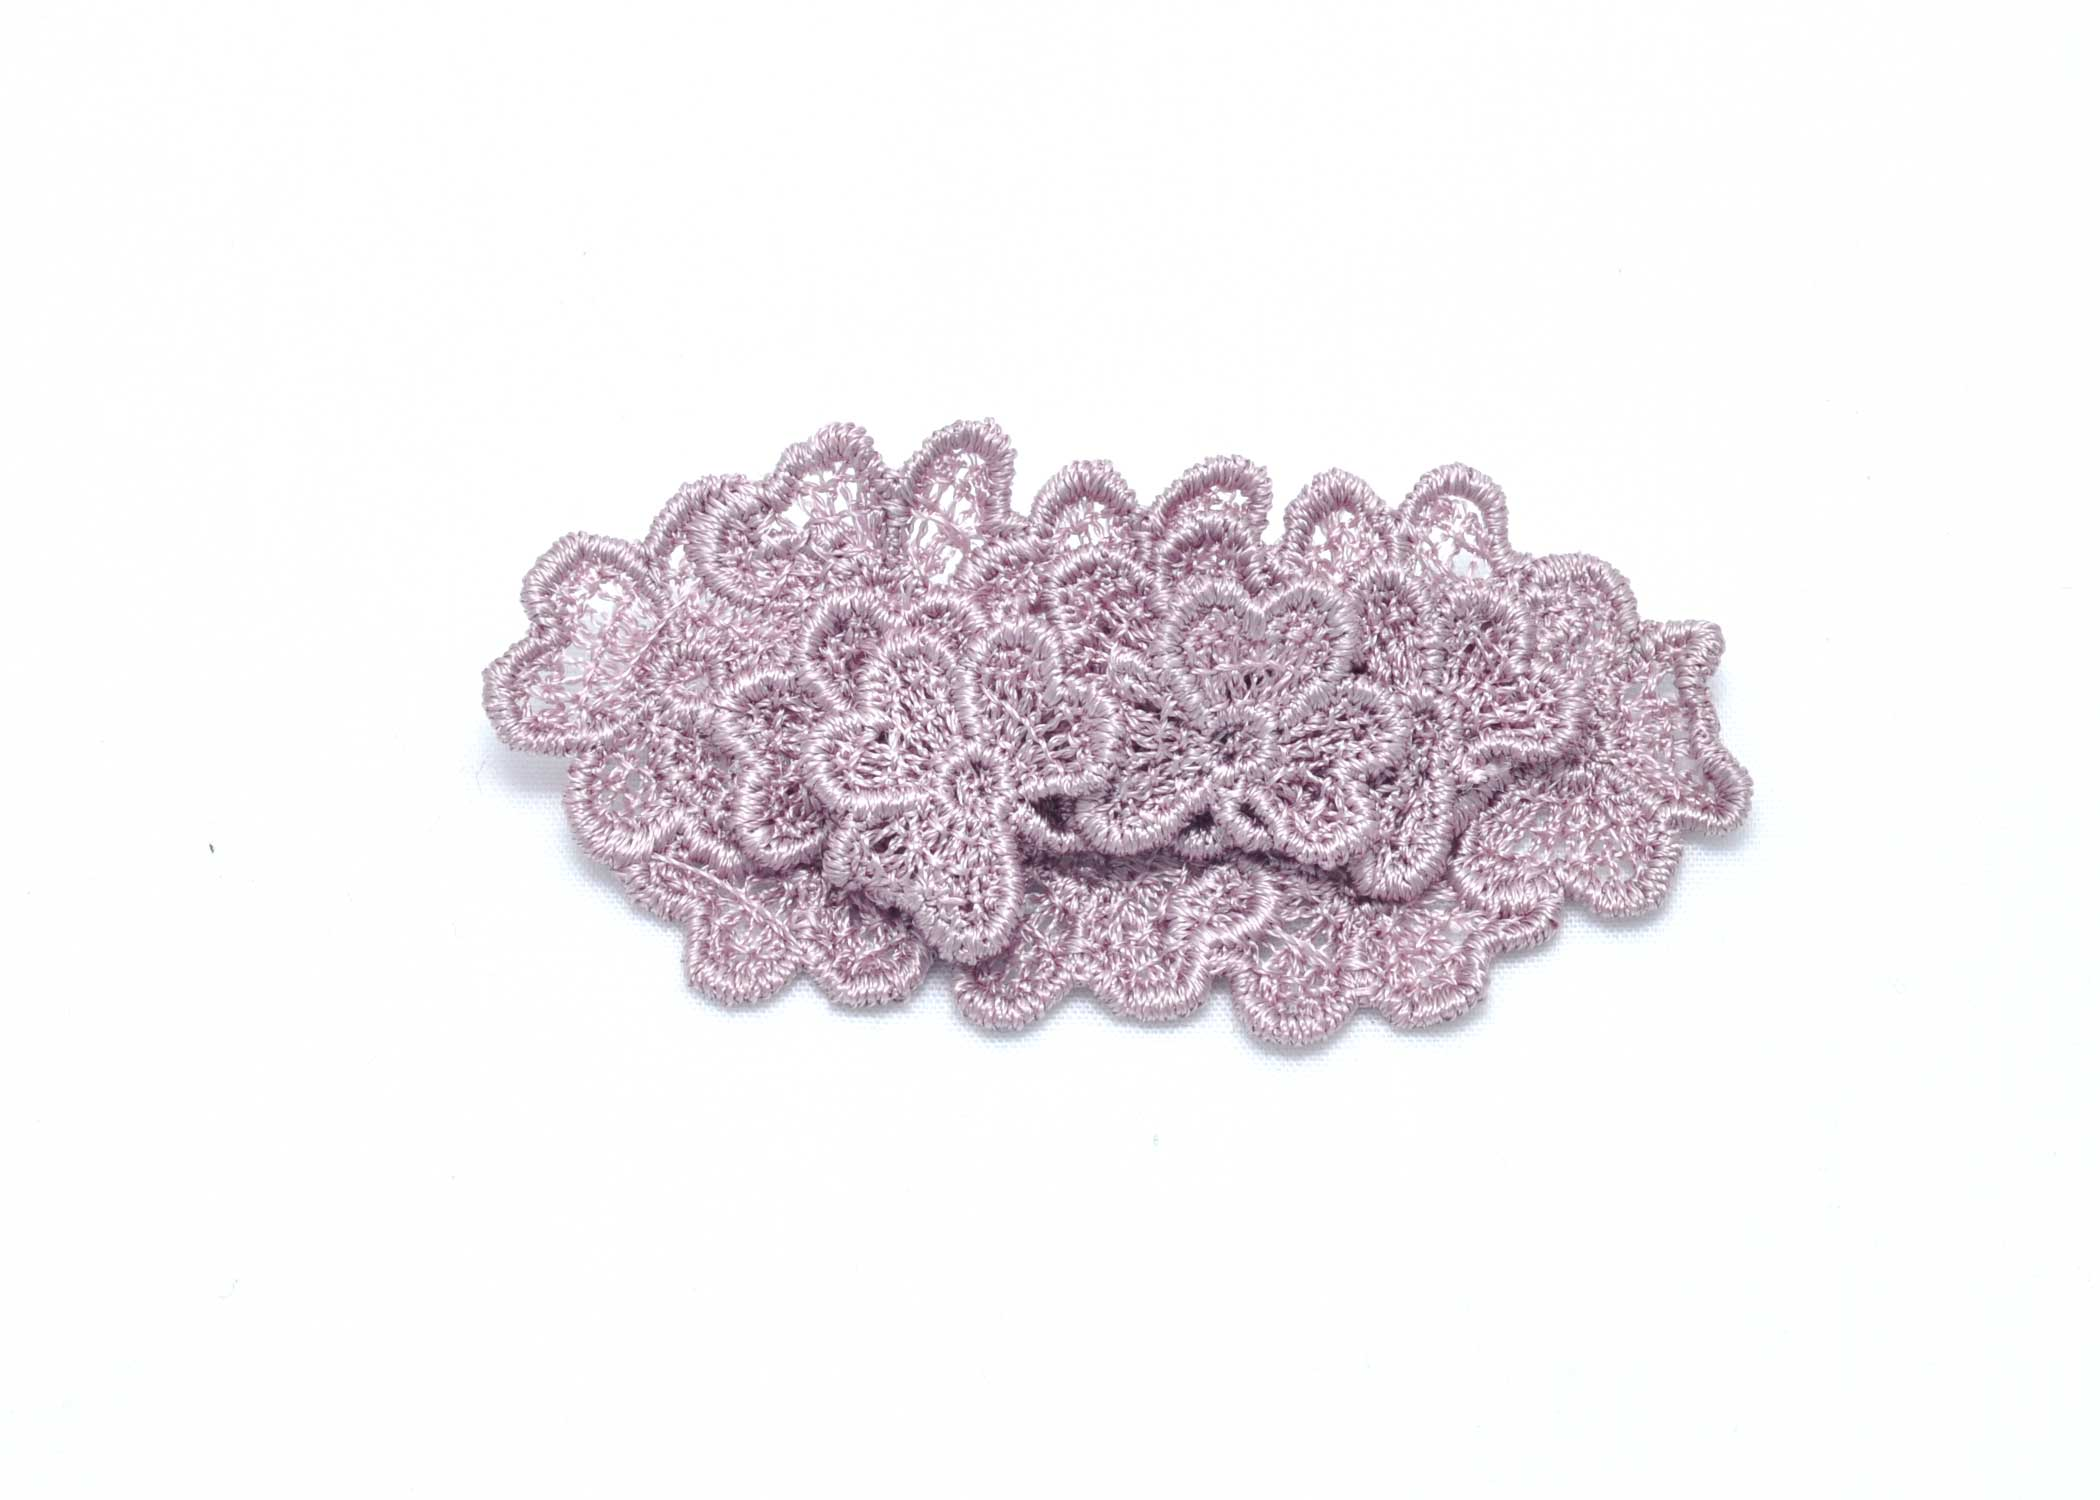 Oval 3D Trefoil lace brooch in grey lilac